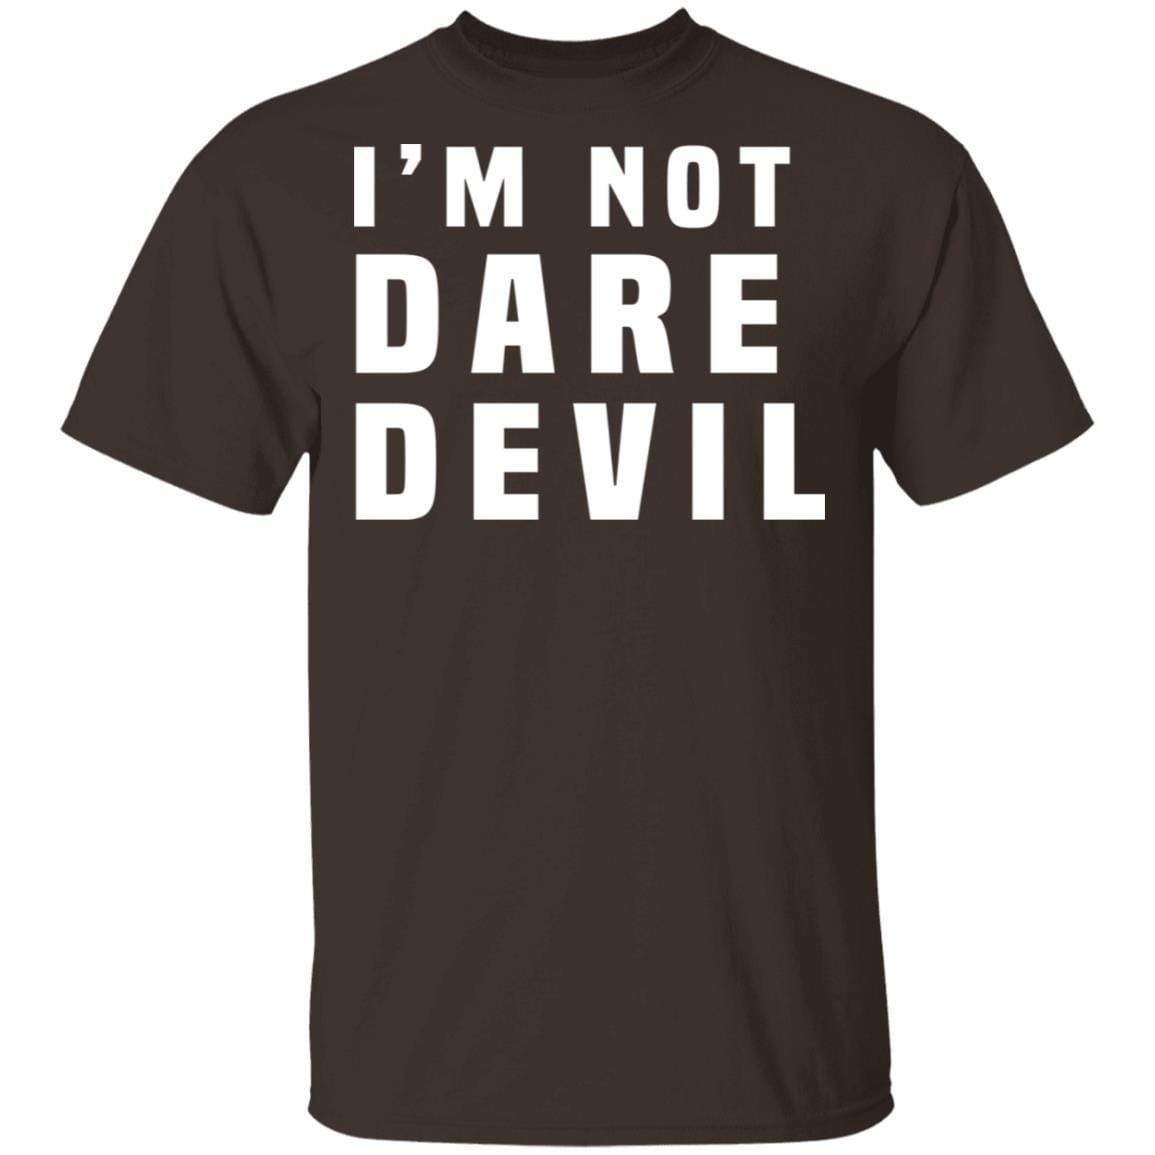 I'm Not Dare Devil T-Shirts, Hoodies 1049-9956-87589167-48152 - Tee Ript